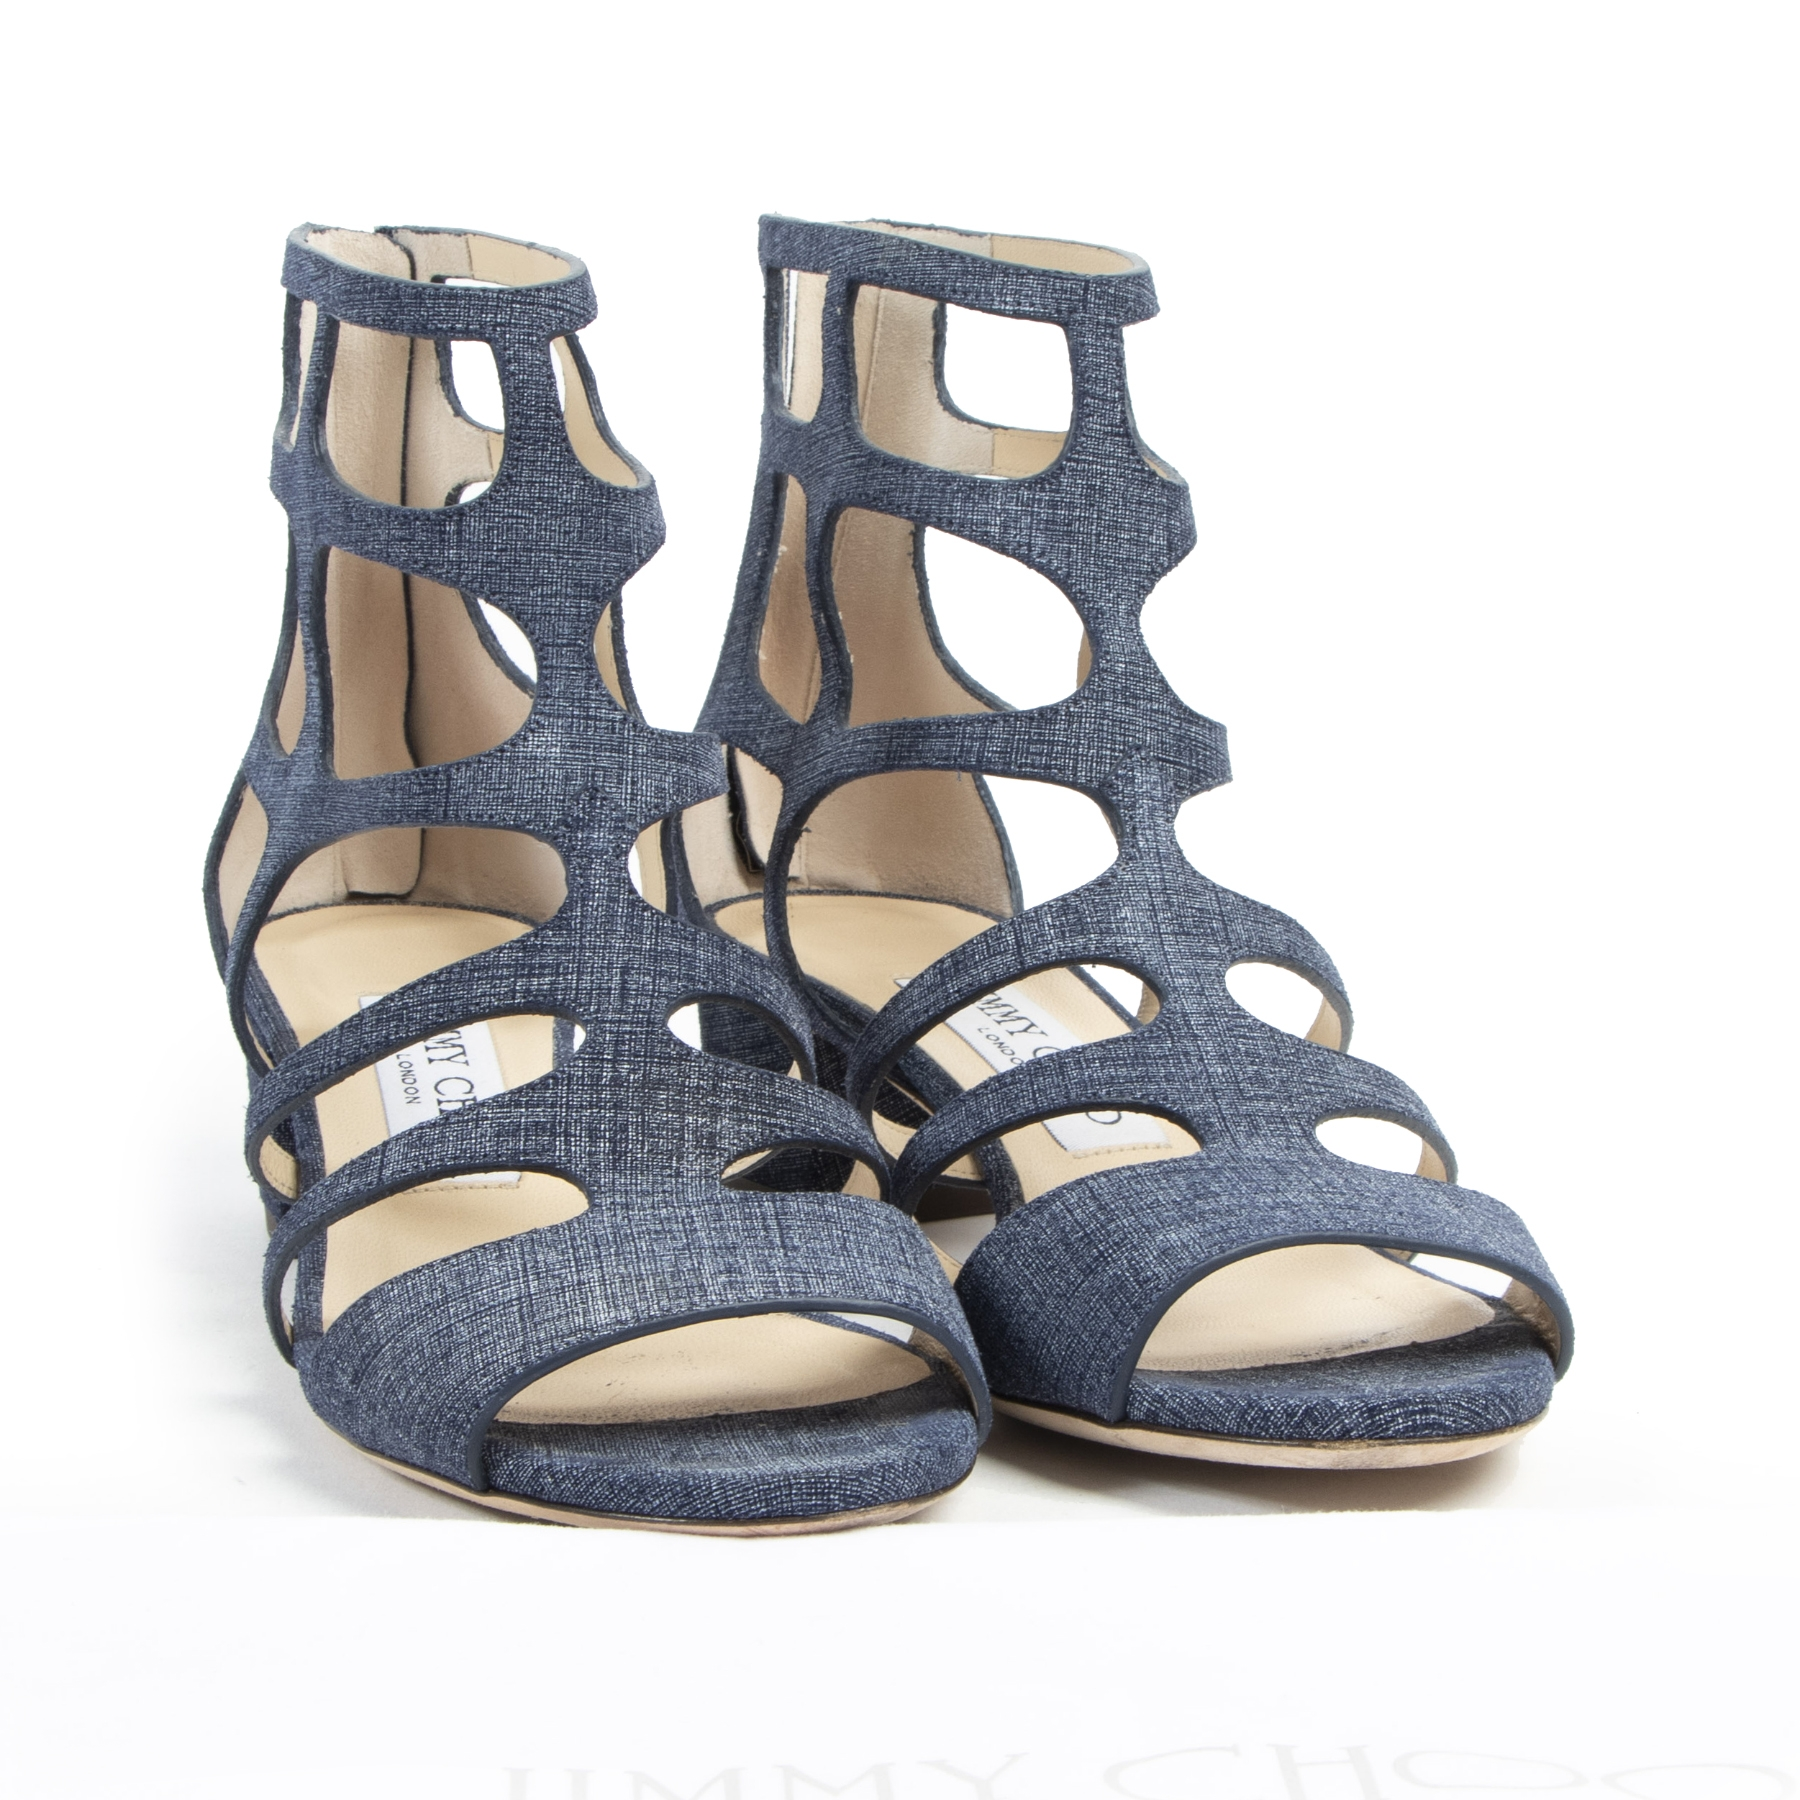 Authentic secondhand Jimmy Choo Ren 35 Denim Sandals - Size 37 designer bags shoes accessories fashion luxury vintage webshop safe secure online shopping